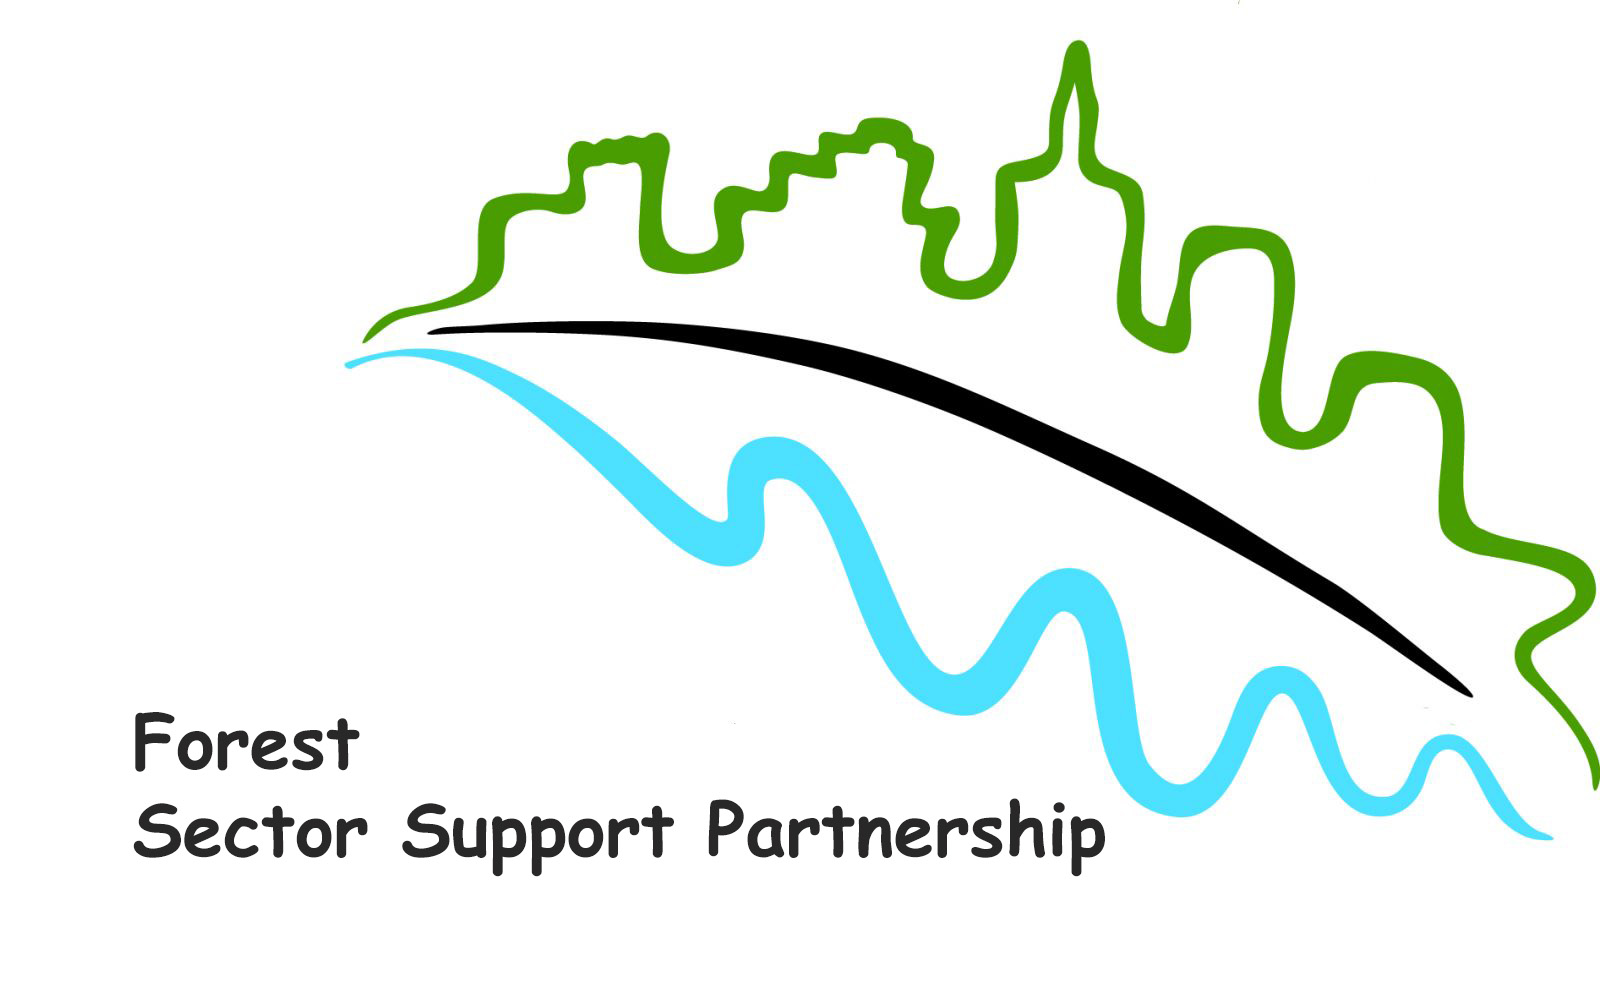 Forest Sector Support Partnership